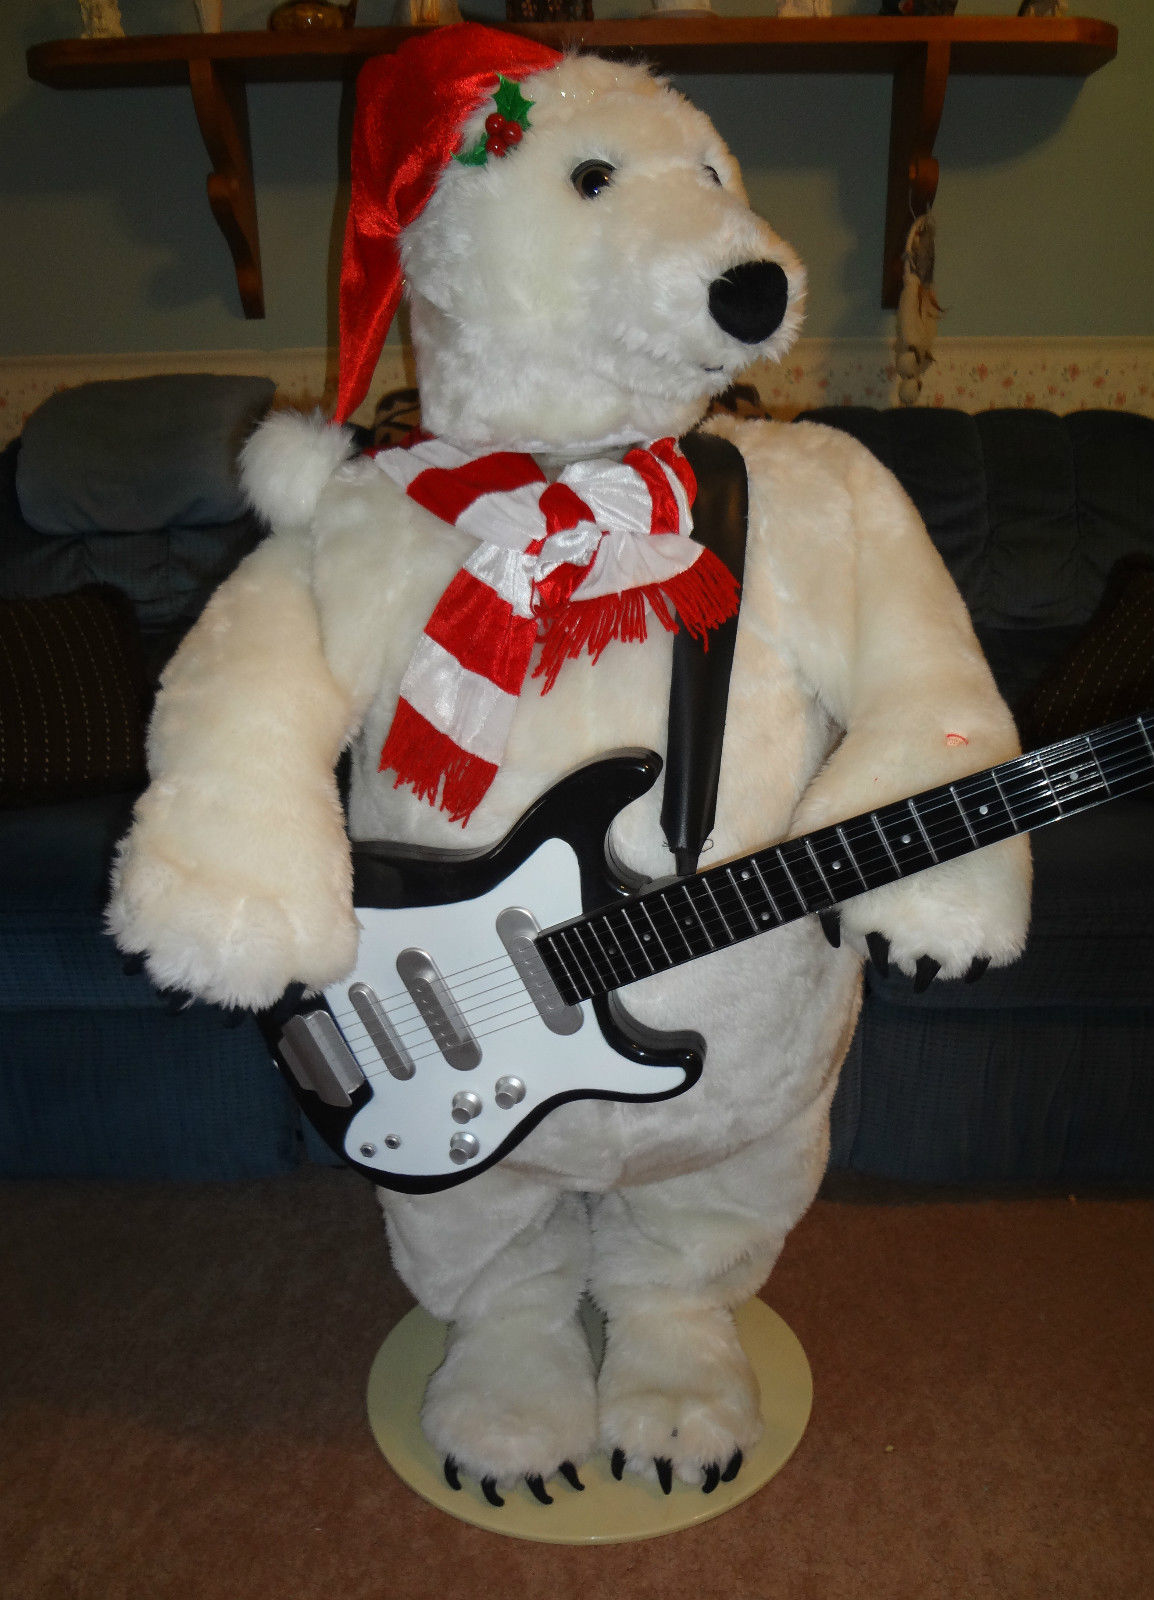 animated christmas decoration polar bear playing giutar animatronic - Bear Christmas Decorations